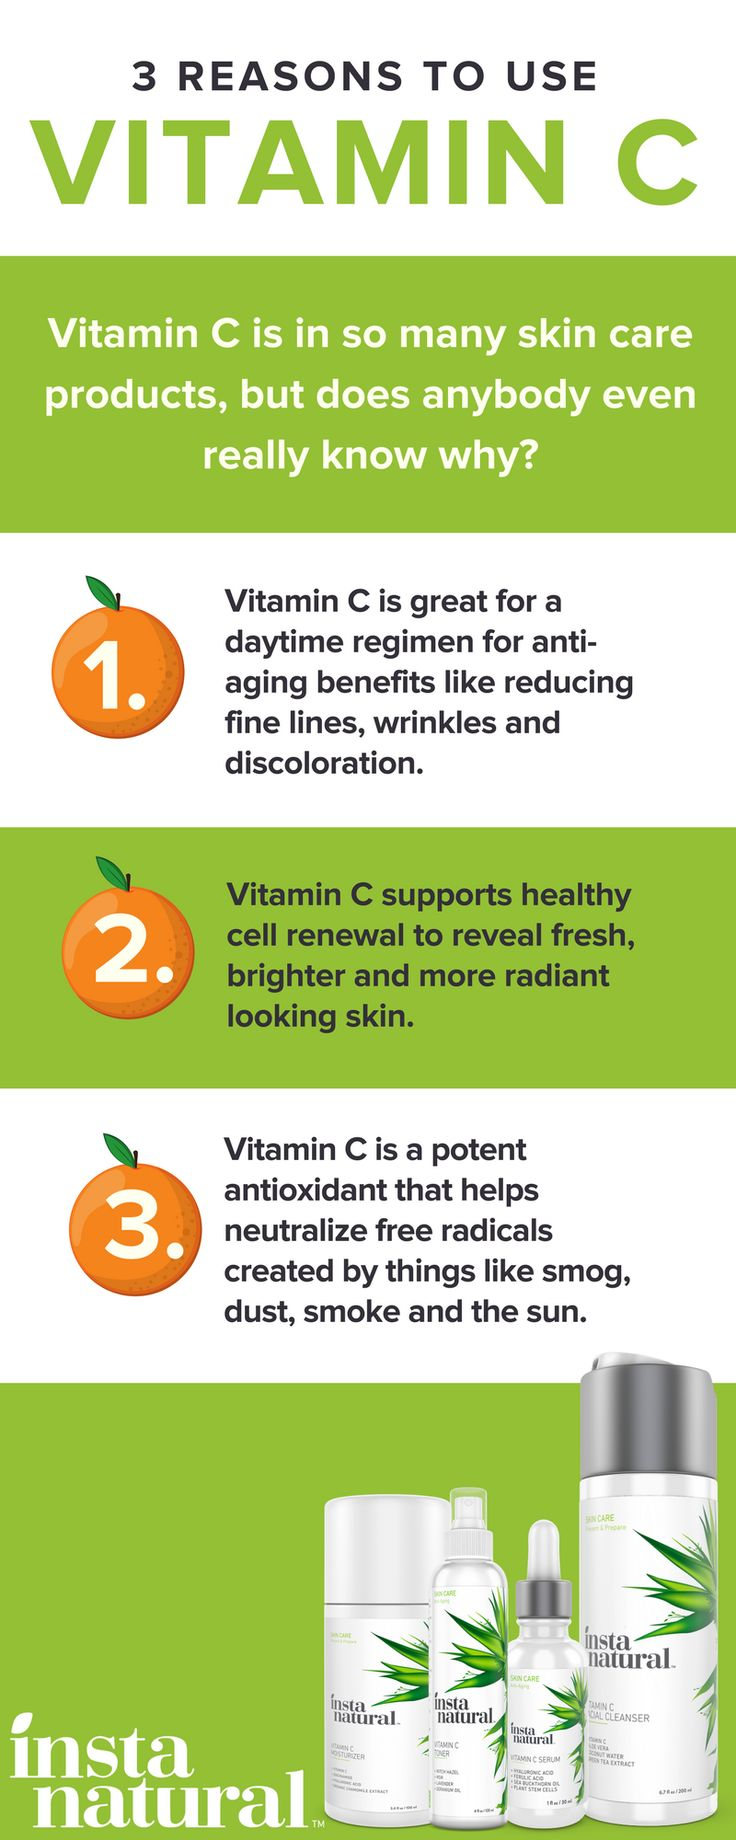 Vitamin C is a key ingredient in some of InstaNatural products. Here's what it can do for you and why you should be using it.